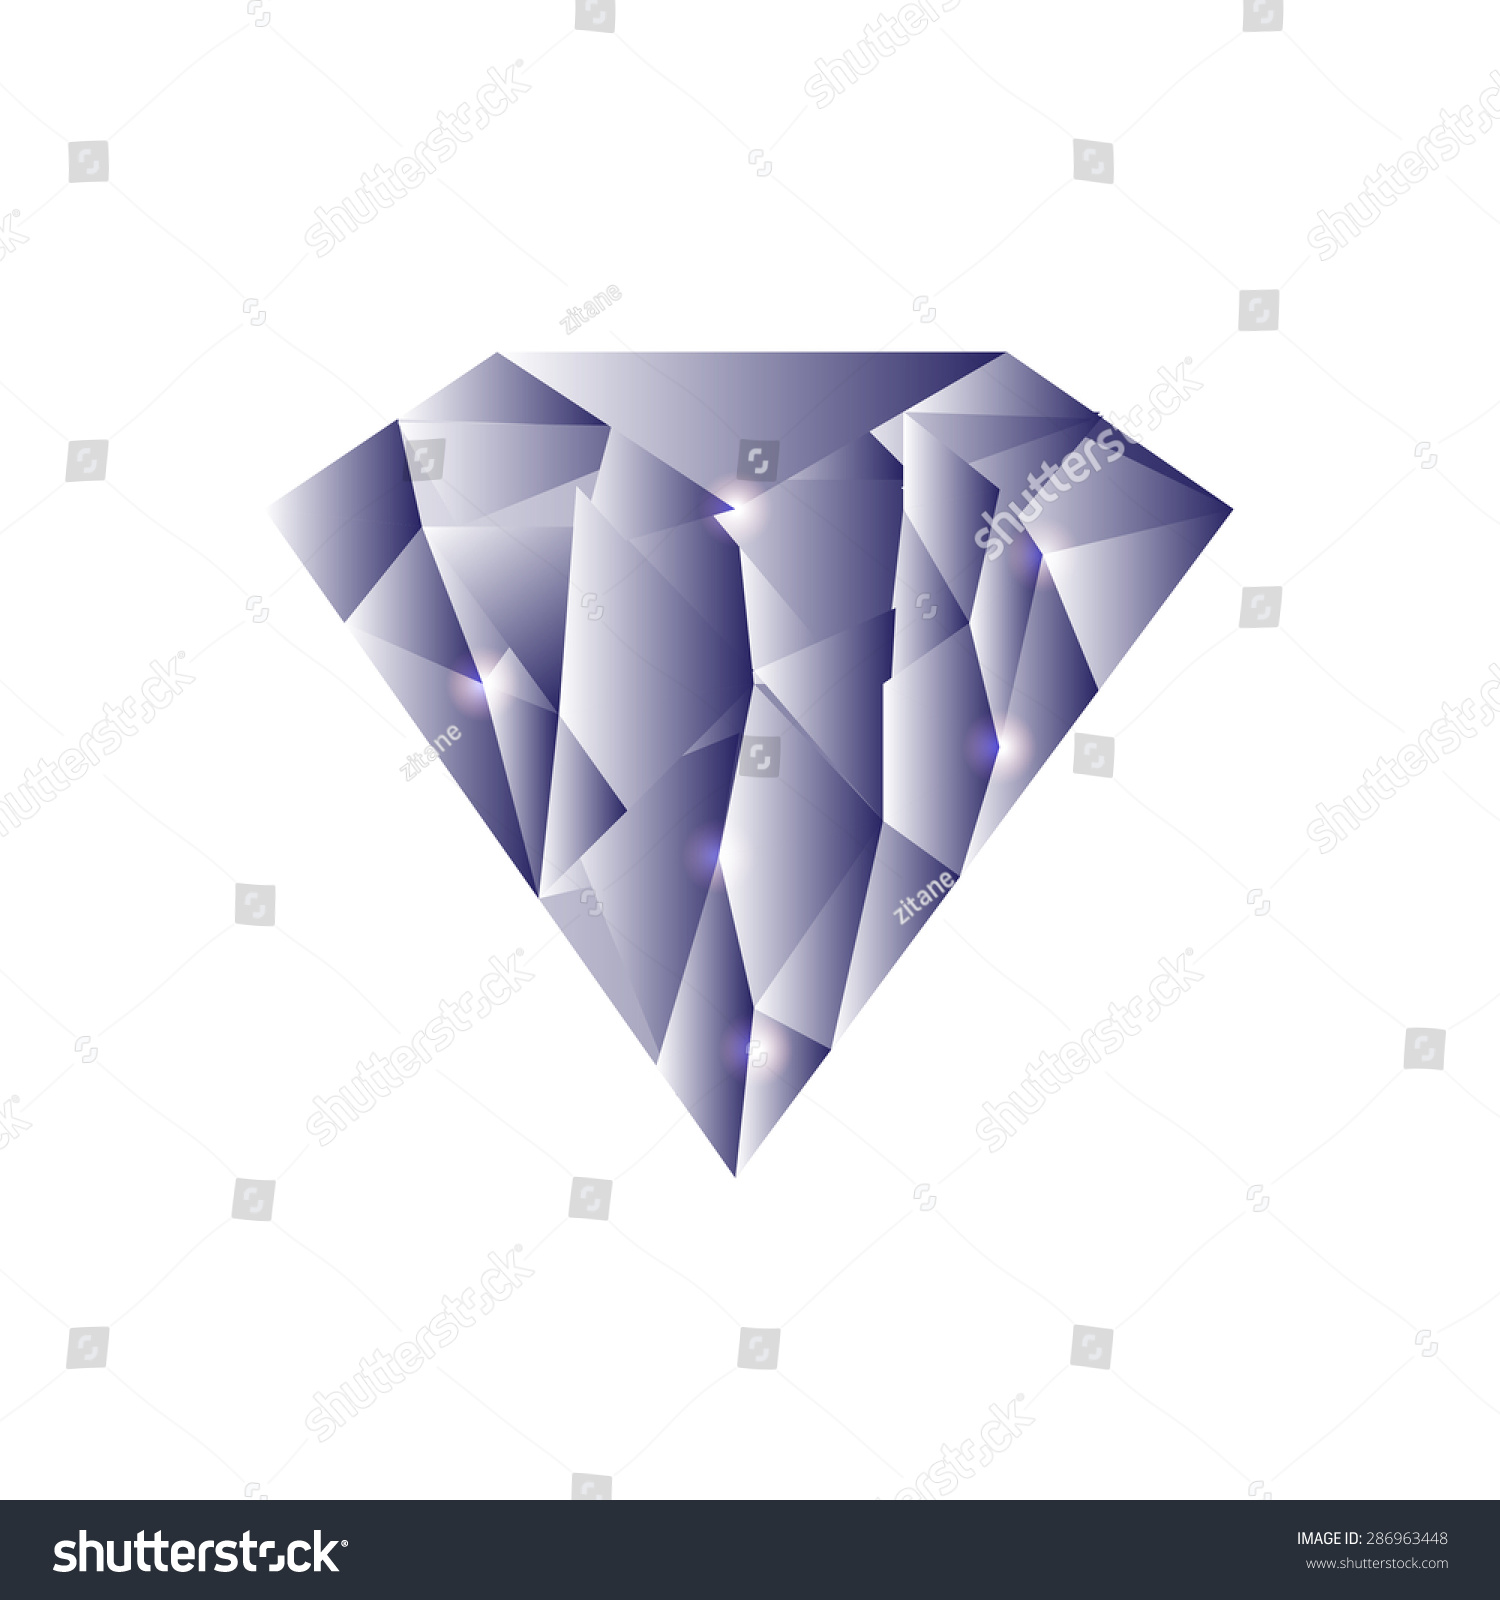 clip landscape diamond mountains for vector in origami elements polygon style art